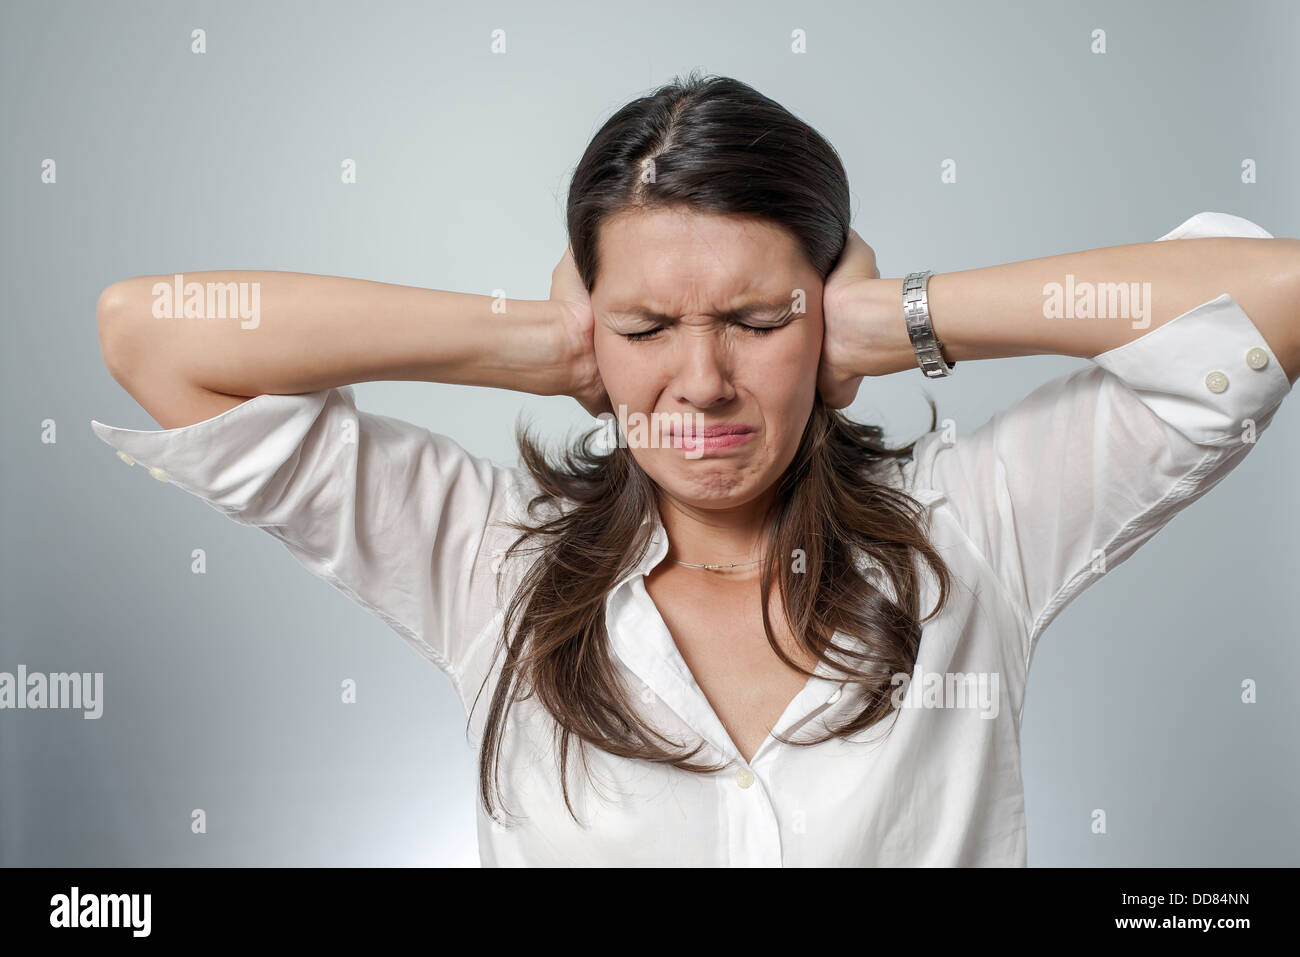 woman with headache and negative face expression - burn-out, depression, frustration, sickness - Stock Image